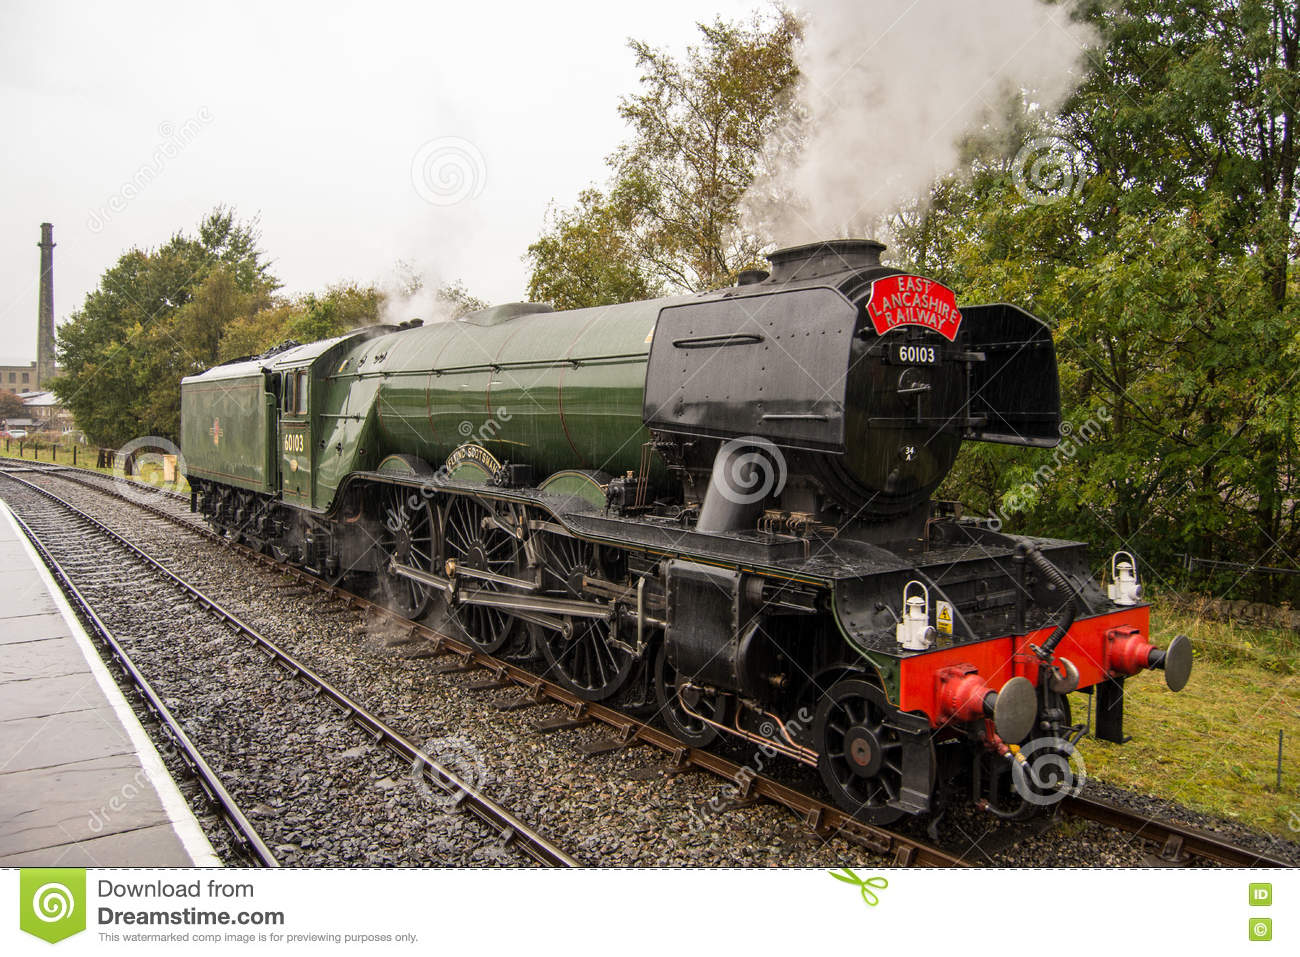 The Flying Scotsman at Ramsbottom Station